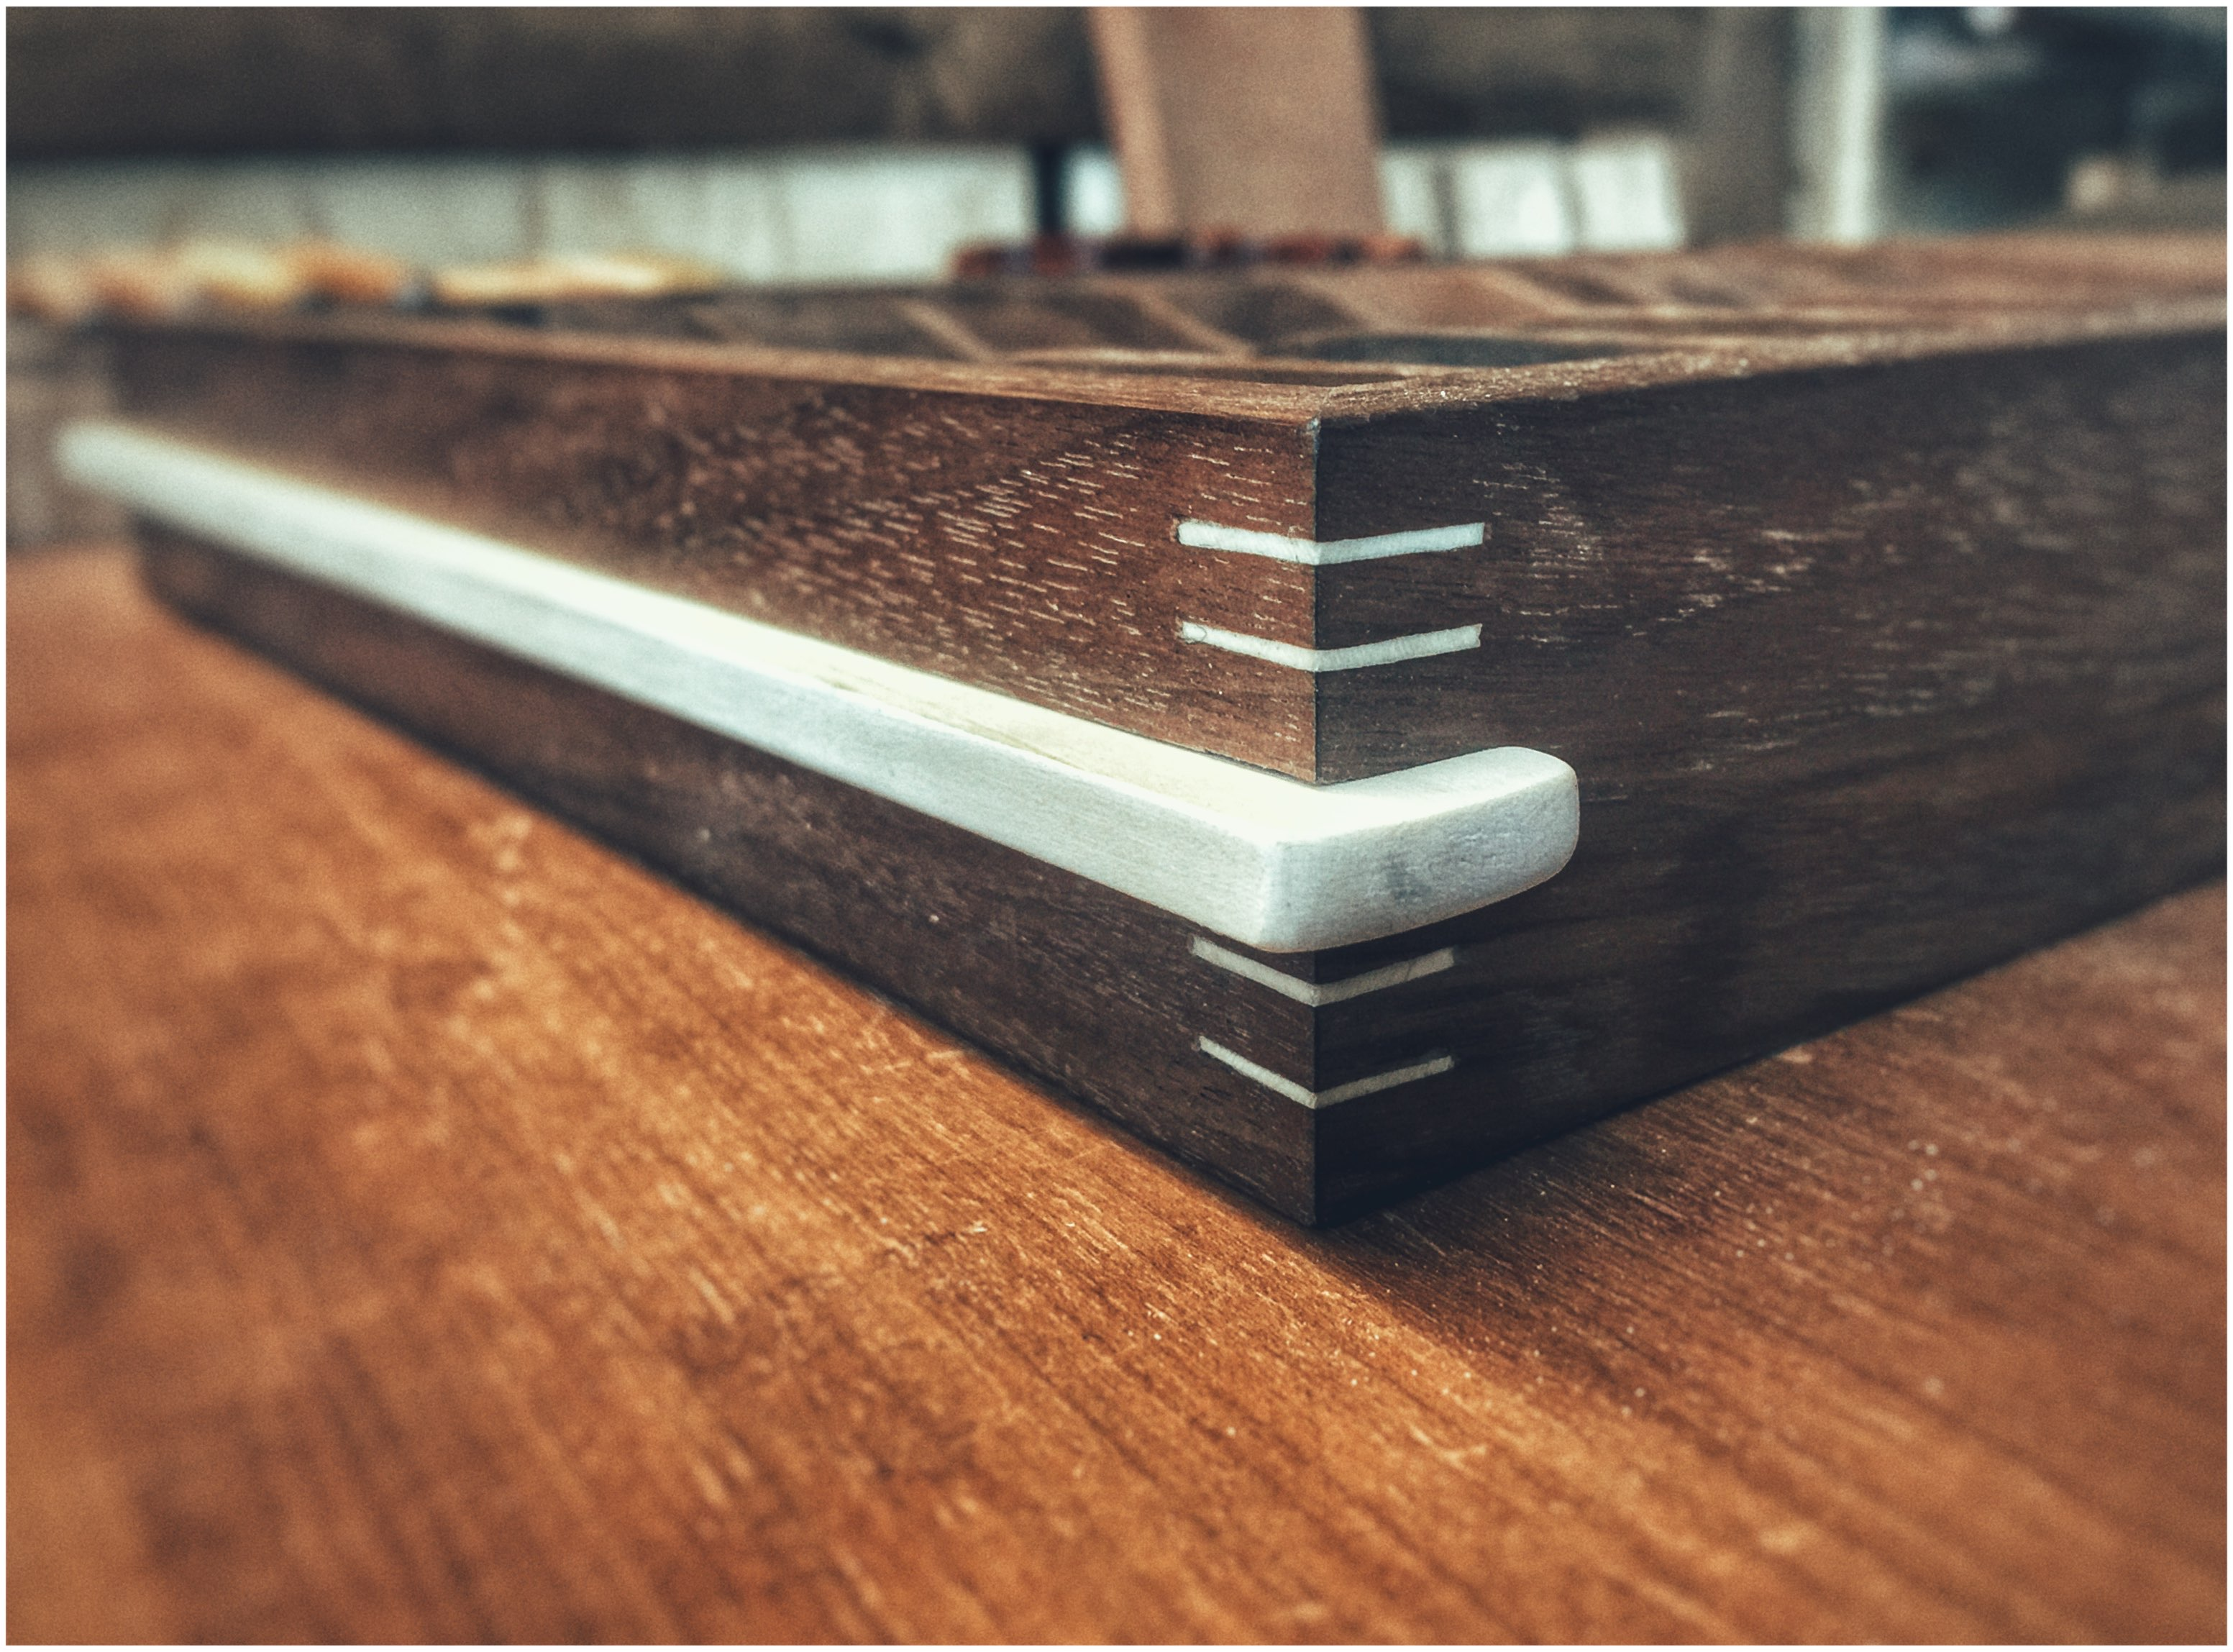 Episode 279 – Drawer Pulls & Design